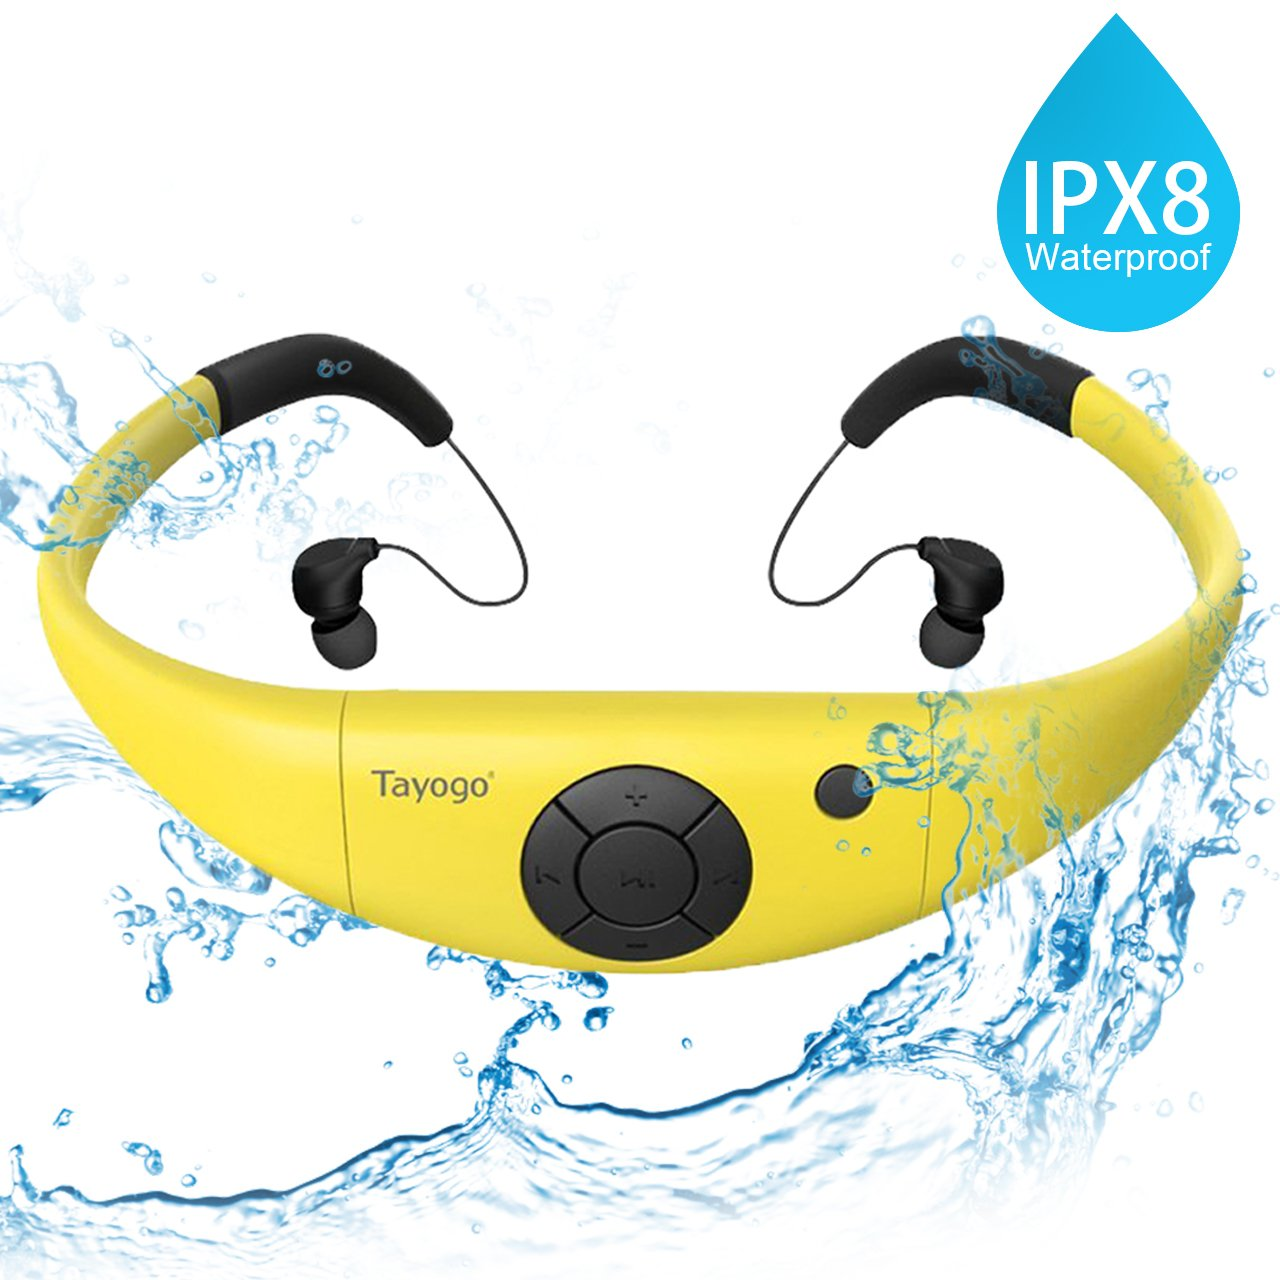 Tayogo Waterproof Mp3 Player 8GB Swimming Bluetooth Headset Underwater 10feet with FM APP Flash Drive for Swimming Running Riding Walking SPA and Other Water Sport with Shuffle Feature